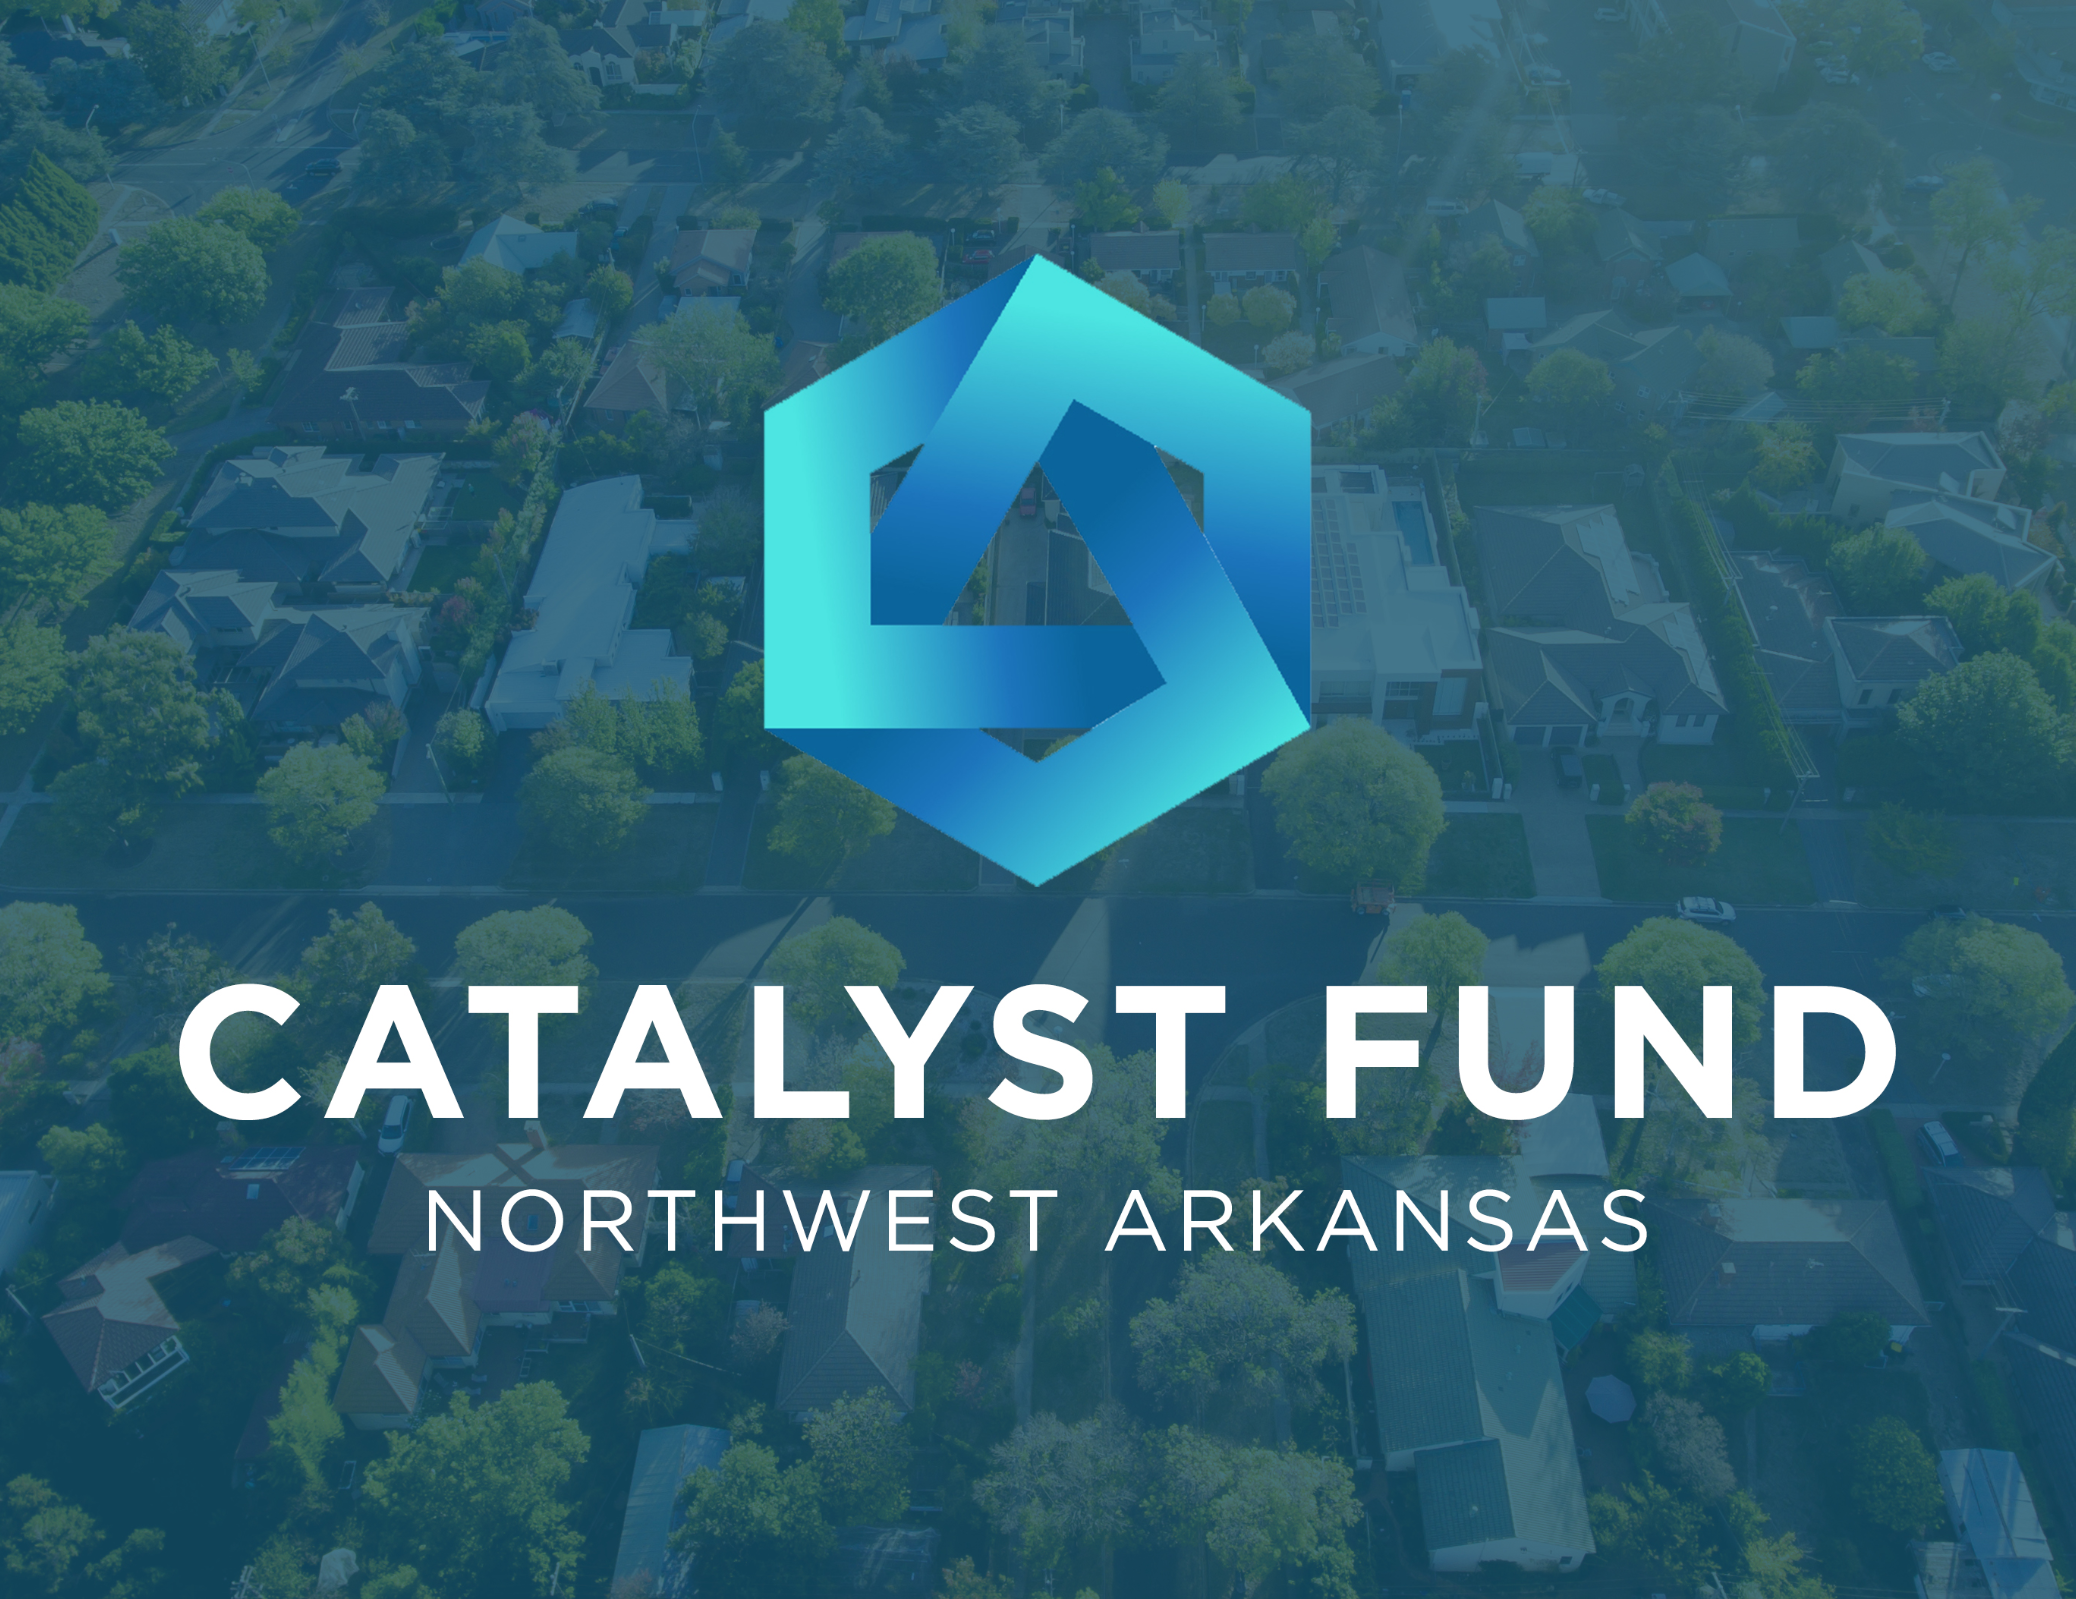 catalyst fund nwa 13x v2